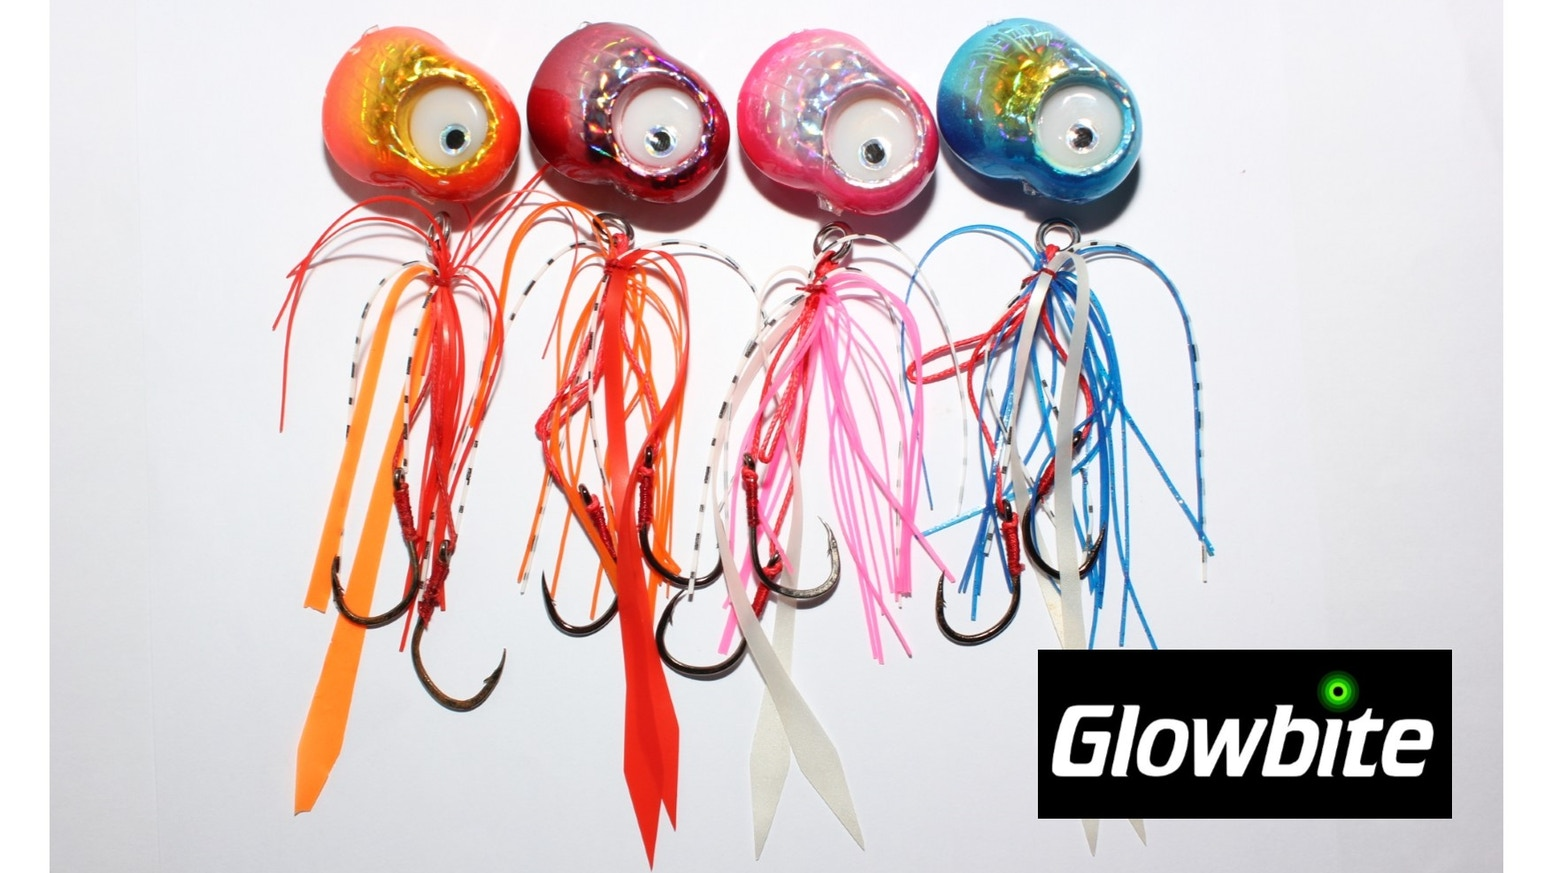 Glowbite The Fishing Lure With A Flashing Light By Wes Braddock